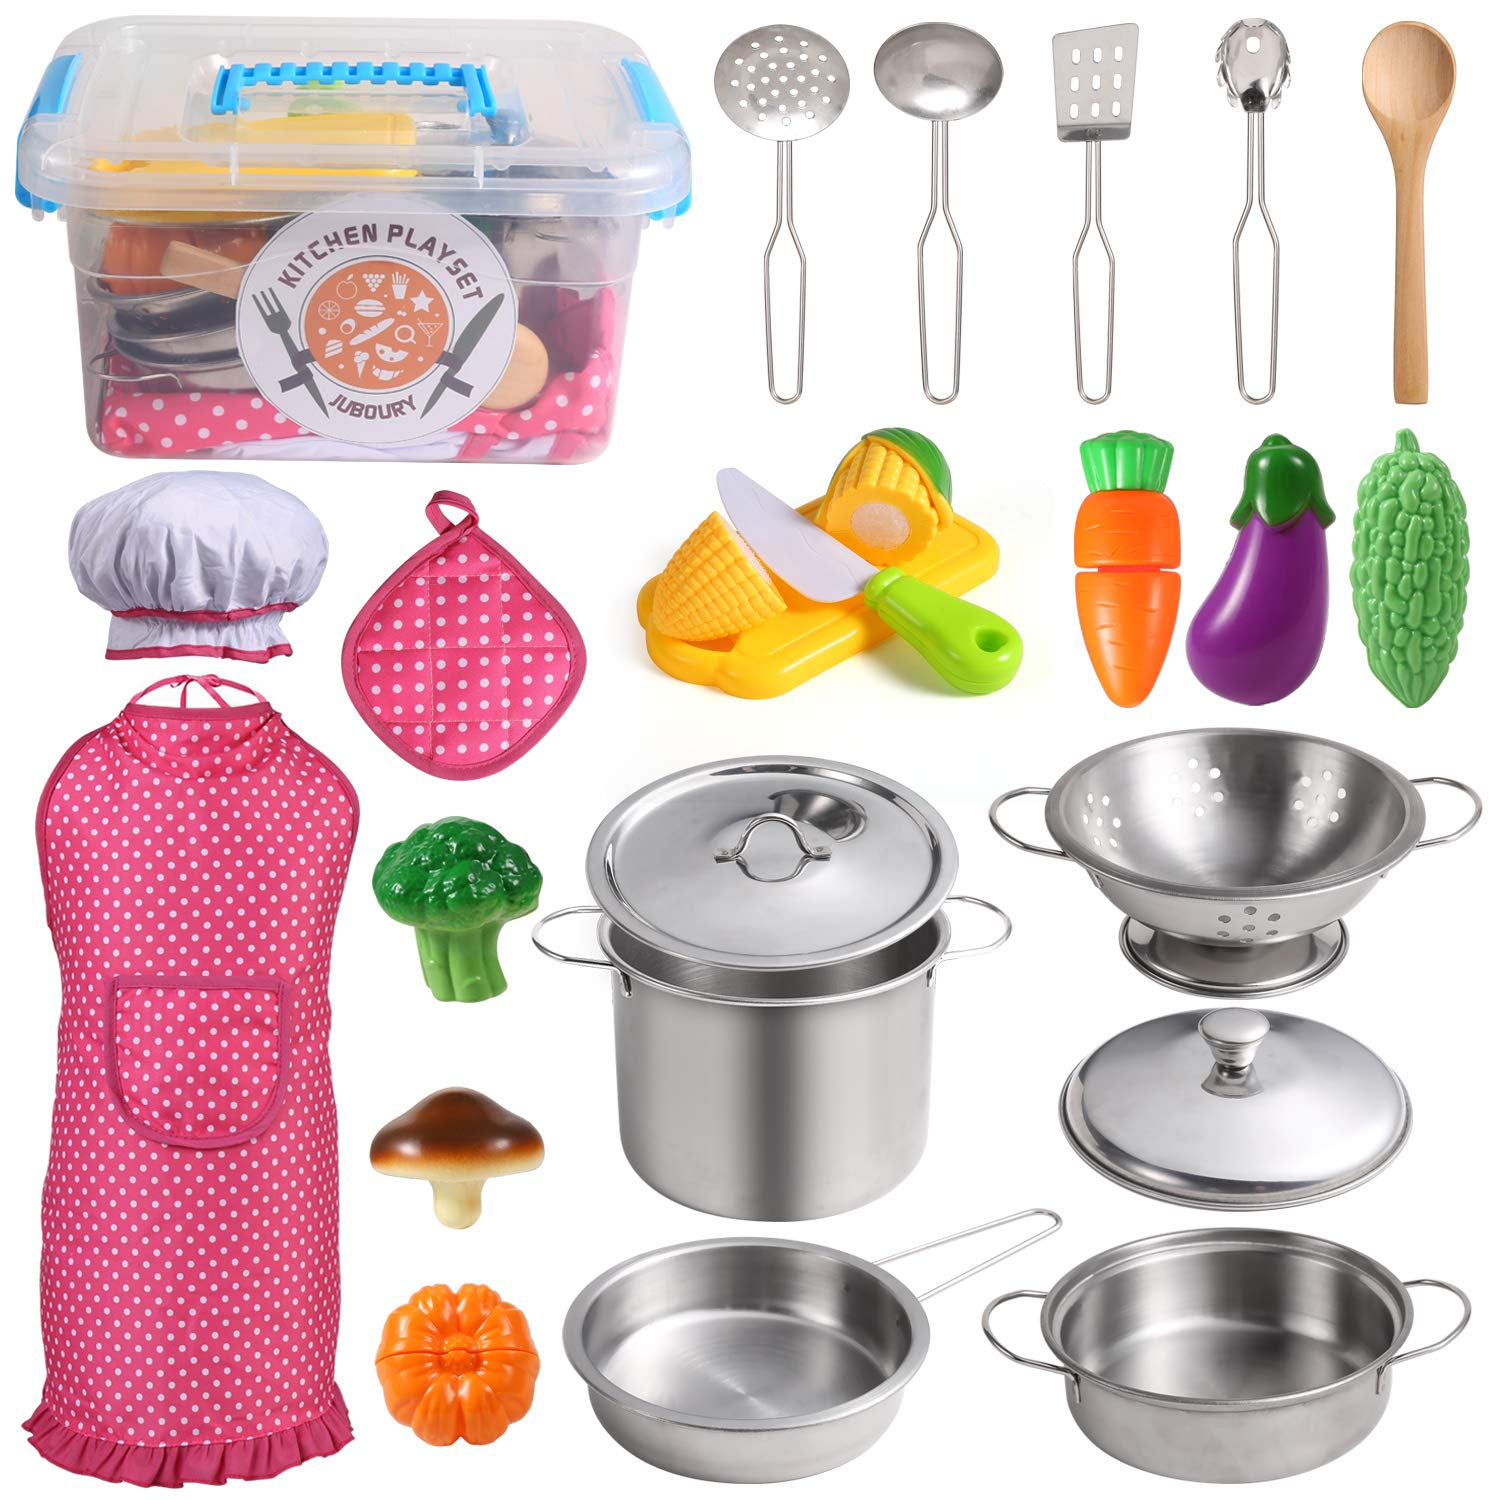 Juboury Kitchen Pretend Play Toys With Stainless Steel Cookware